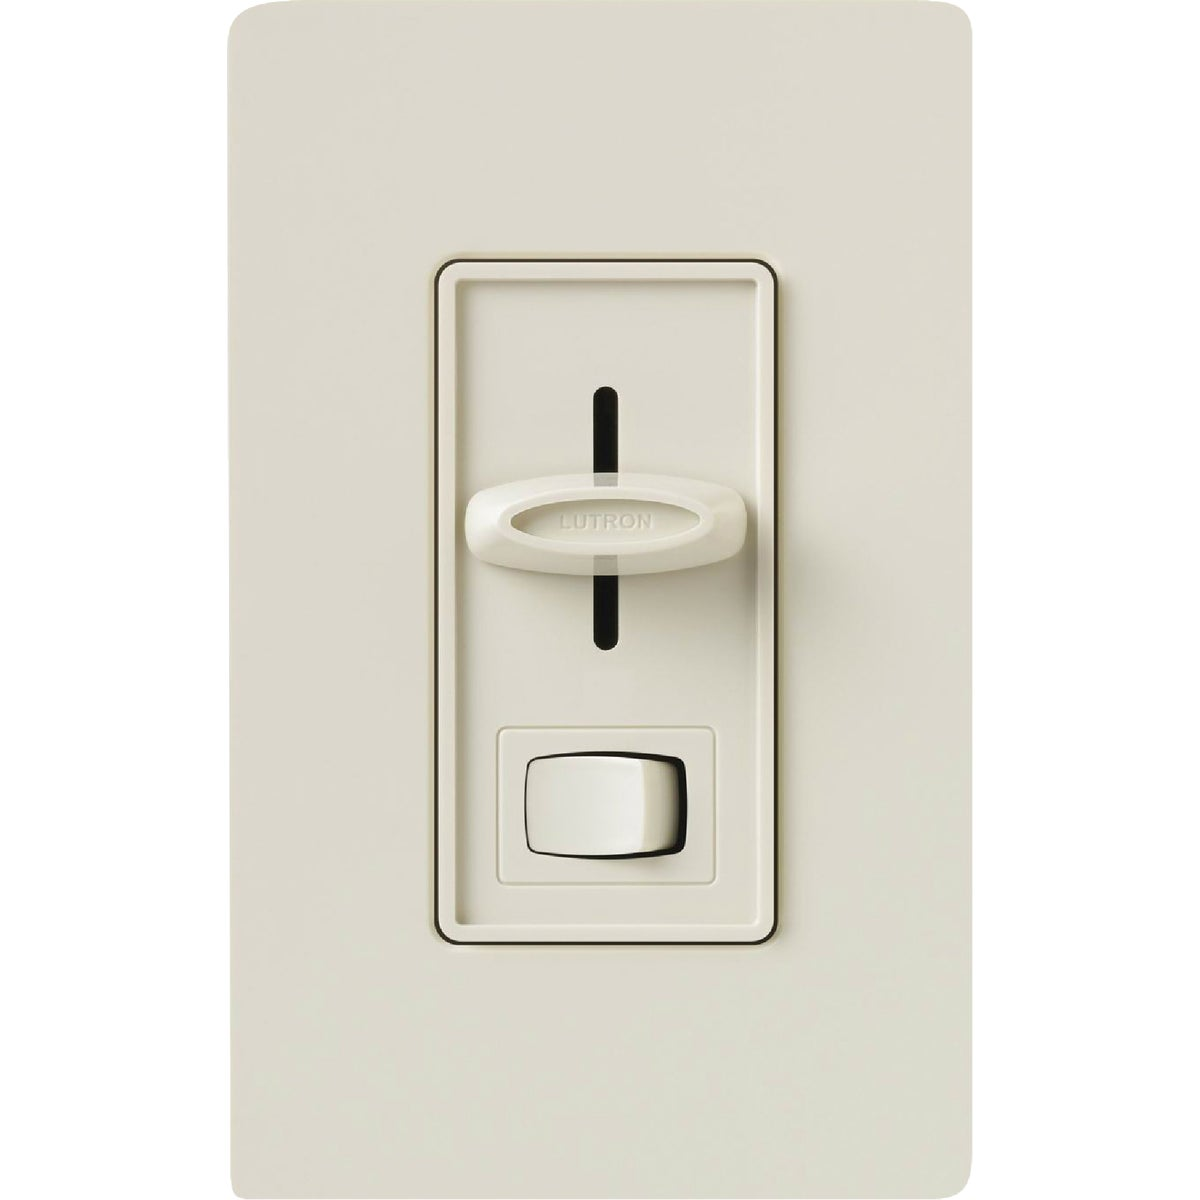 IT ALM SLIDE DIMMER - S-600PH-LA by Lutron Elect Co Inc